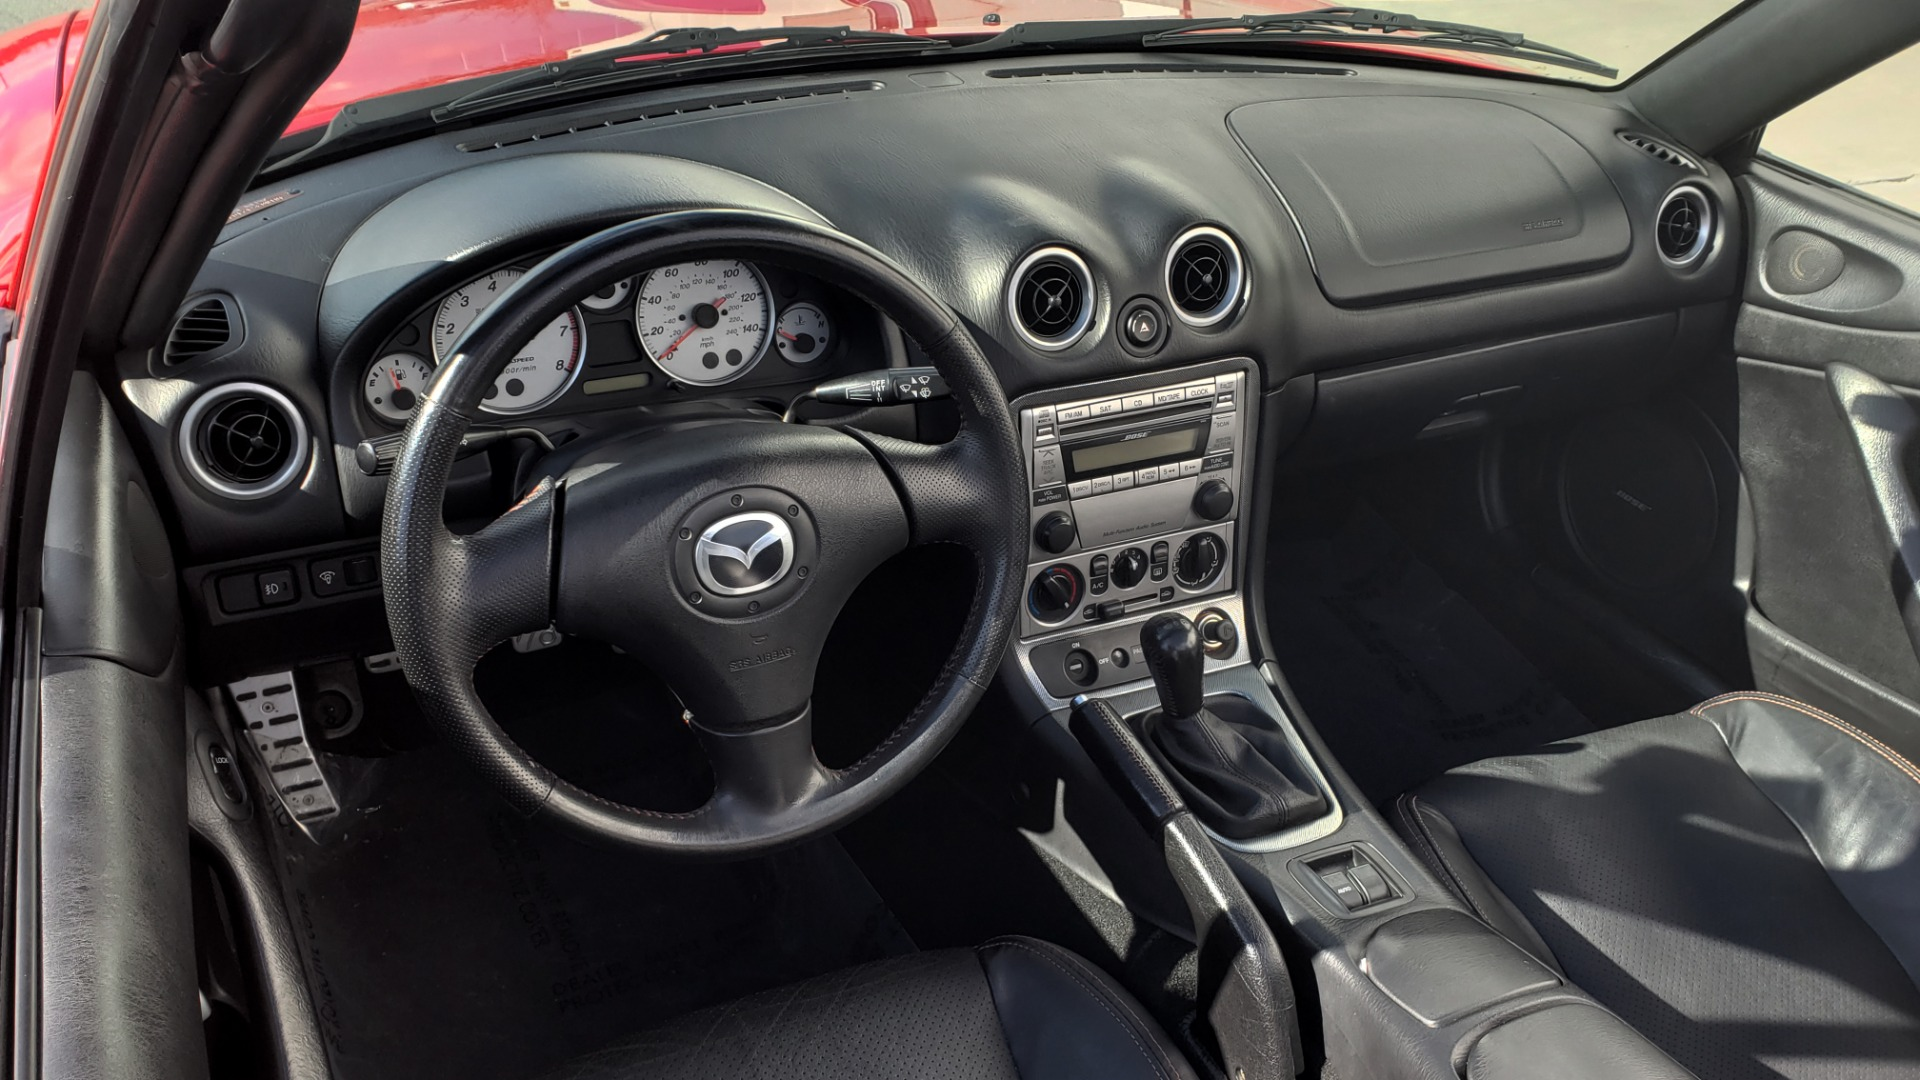 Used 2004 Mazda MX-5 MIATA 2DR CONVERTIBLE MAZDASPEED / GRAND TOURING PKG for sale Sold at Formula Imports in Charlotte NC 28227 22